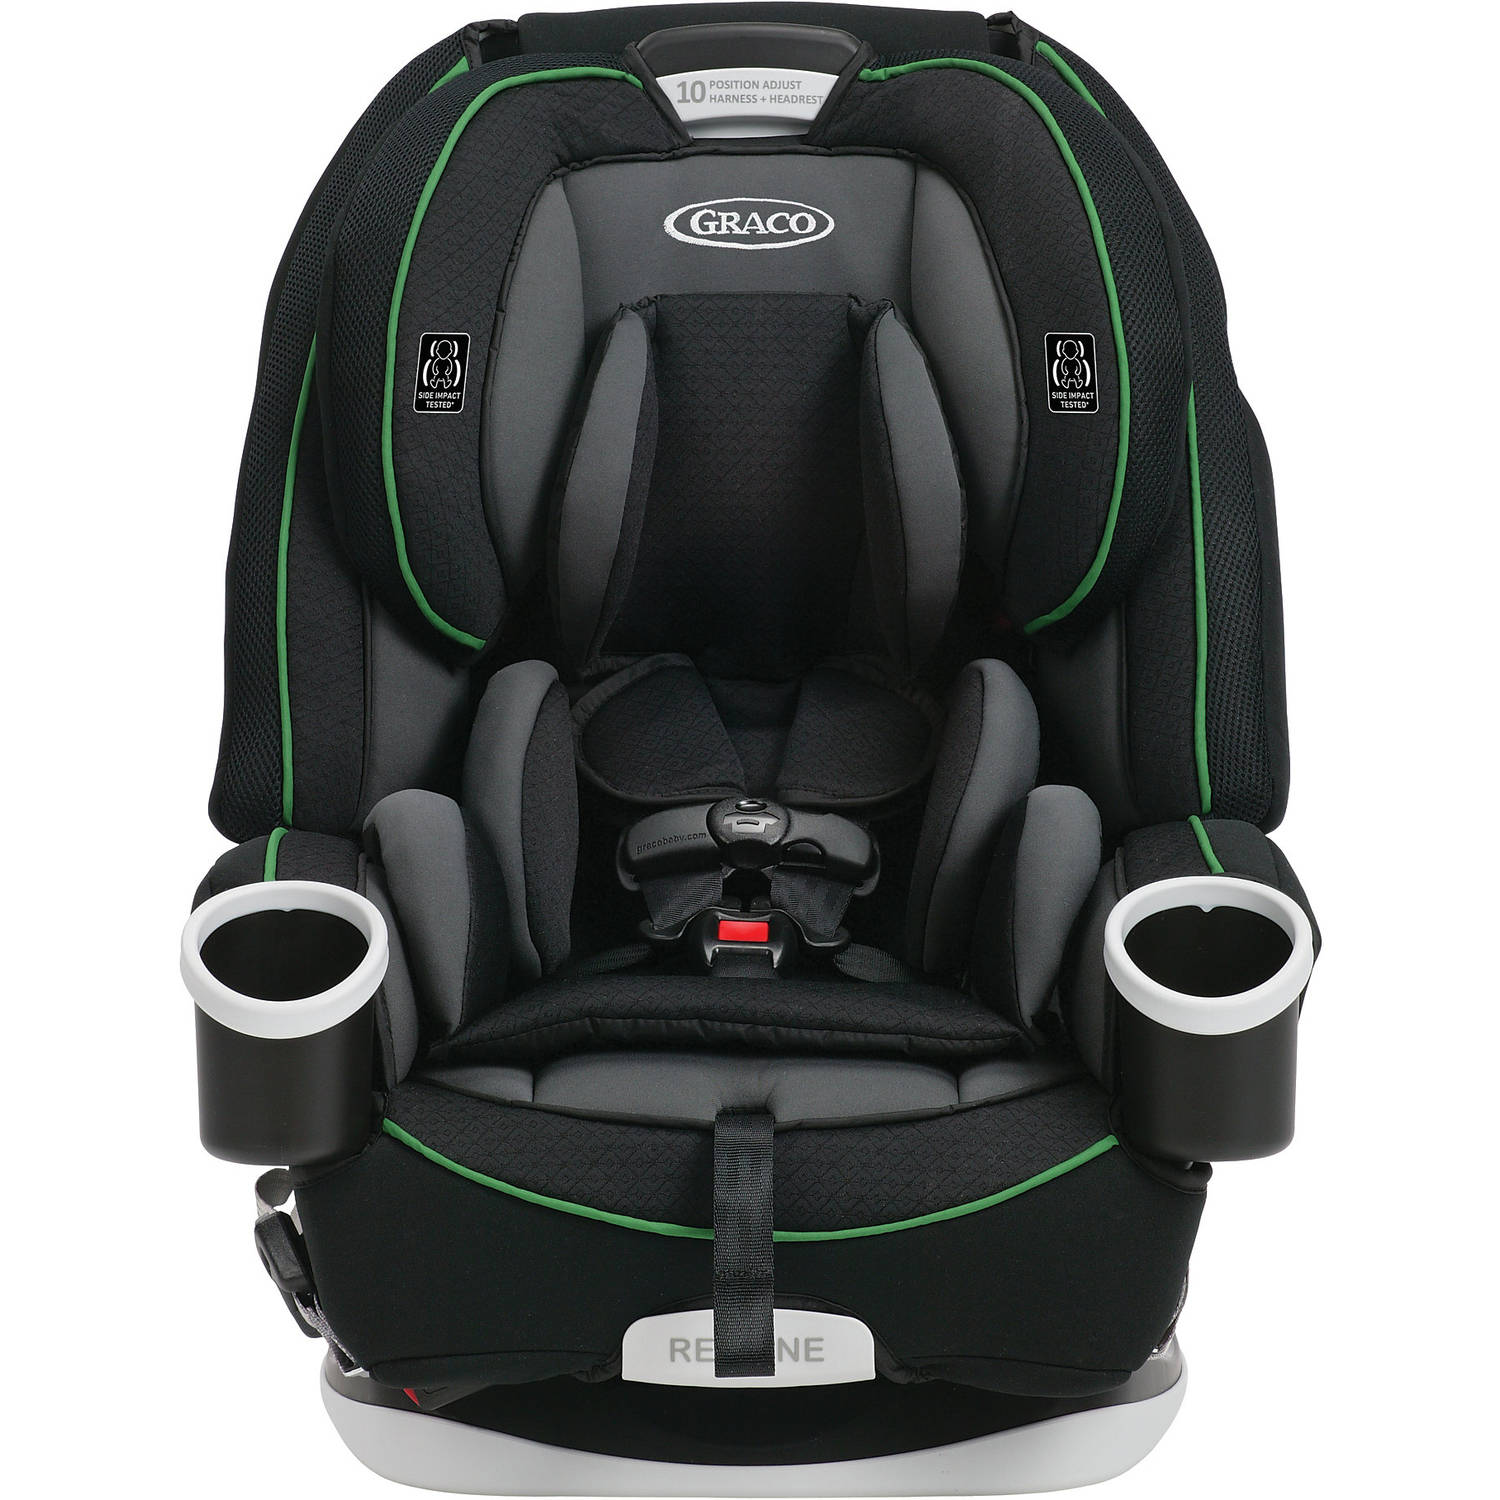 5-in-1 Convertible Car Seat Infant Kids Adjustable Safety